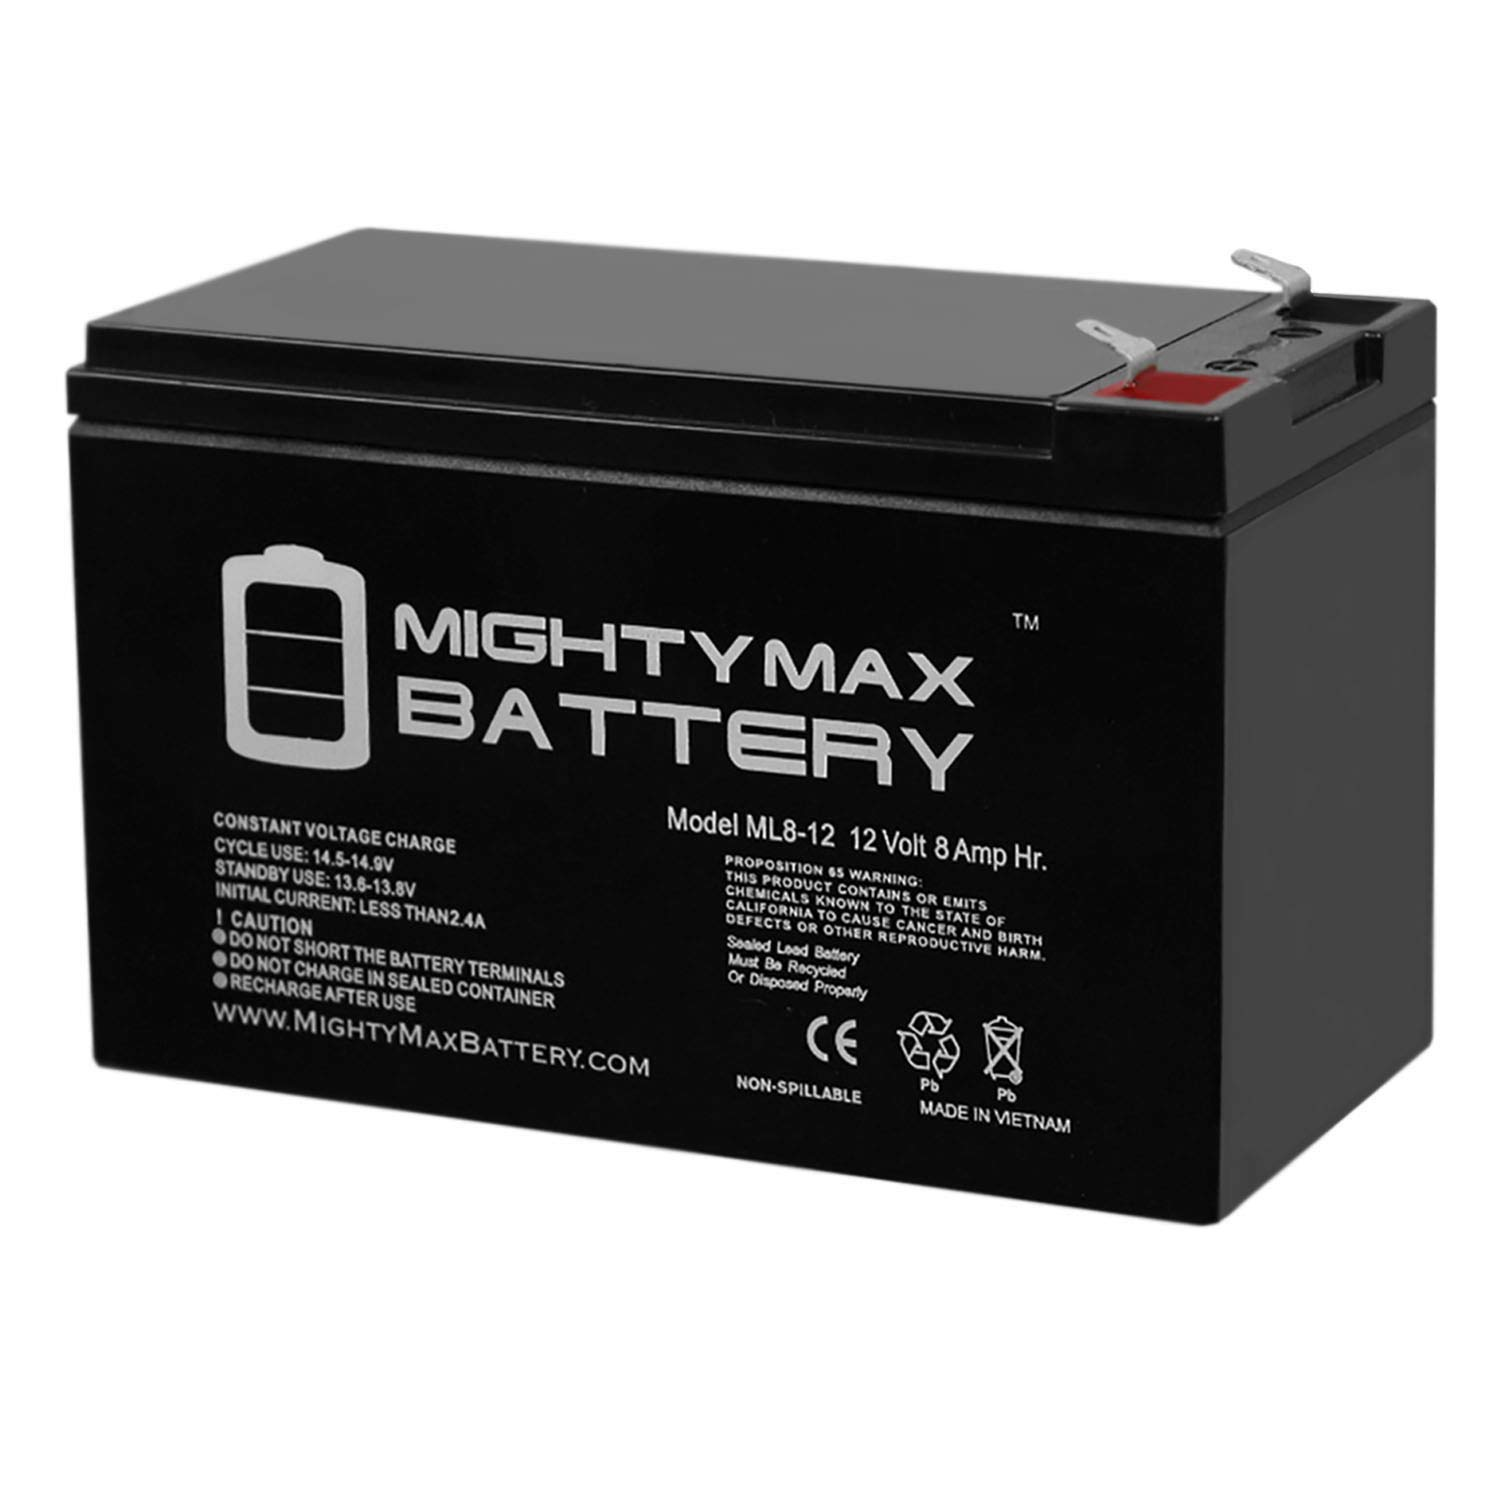 Mighty Max Battery ML8-12 - 12V 8AH Replacement for APC Smart UPS Back RBC 17 Battery Brand Product